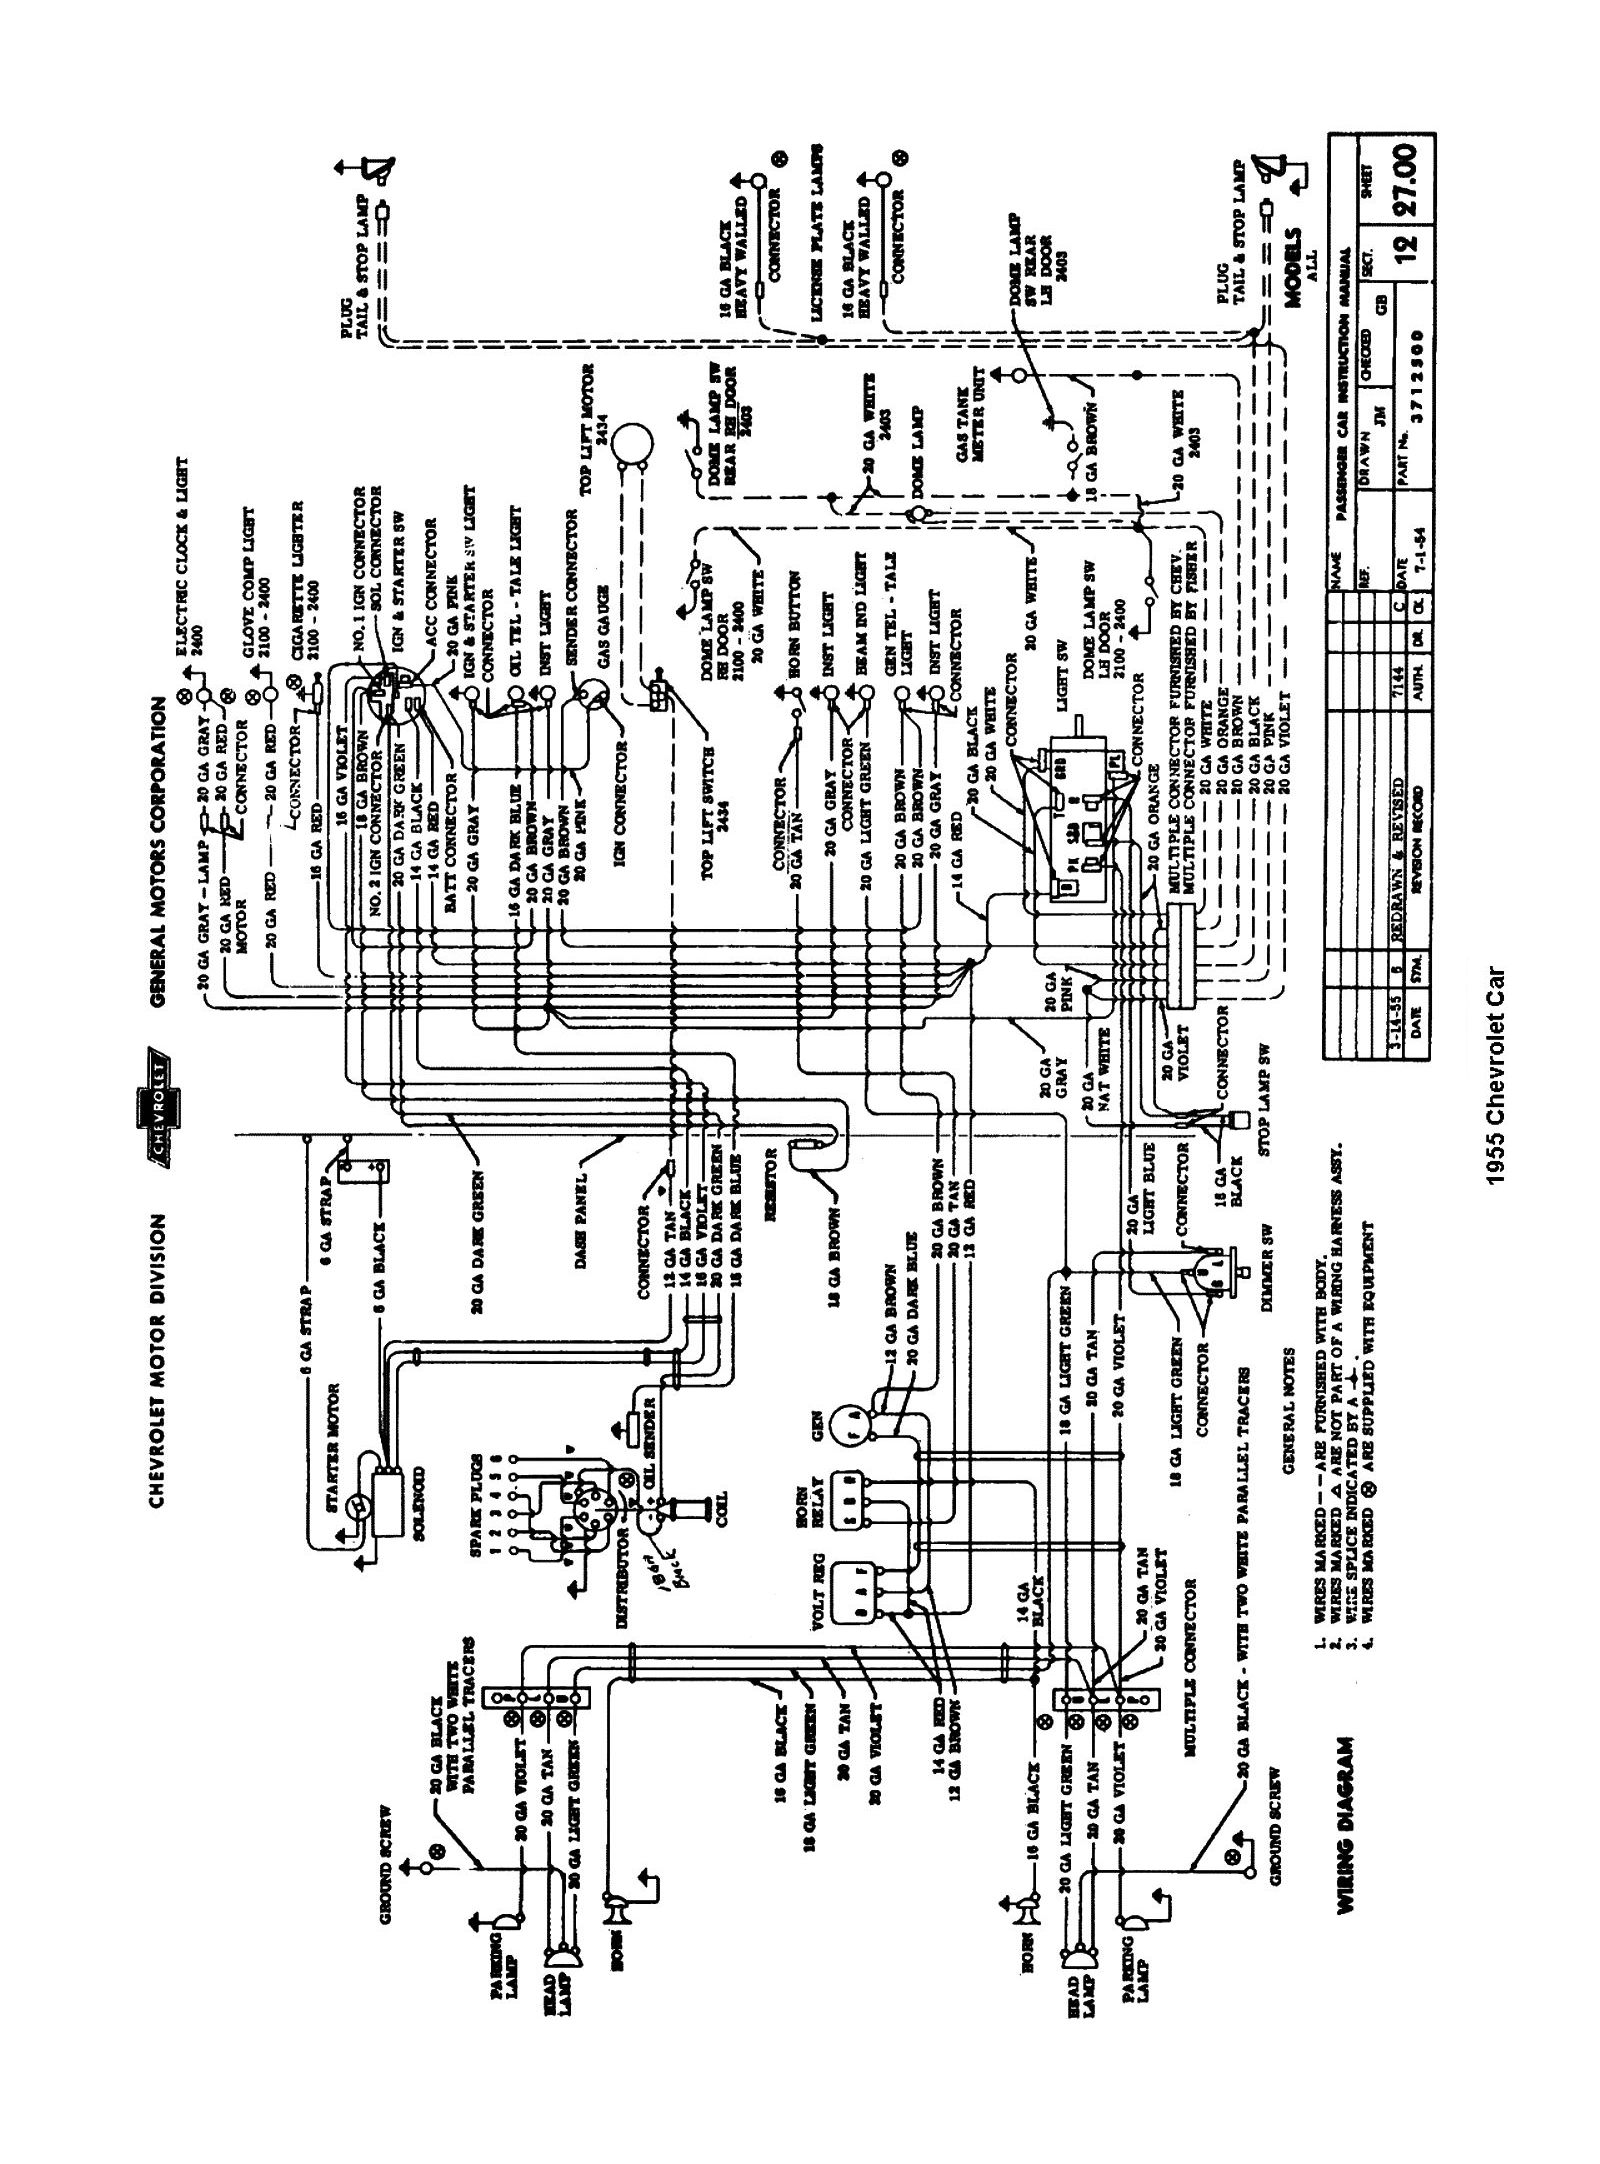 Chevy Wiring Diagrams Hardy Furnace Parts Diagram Free Download Schematic 1955 Car Passenger